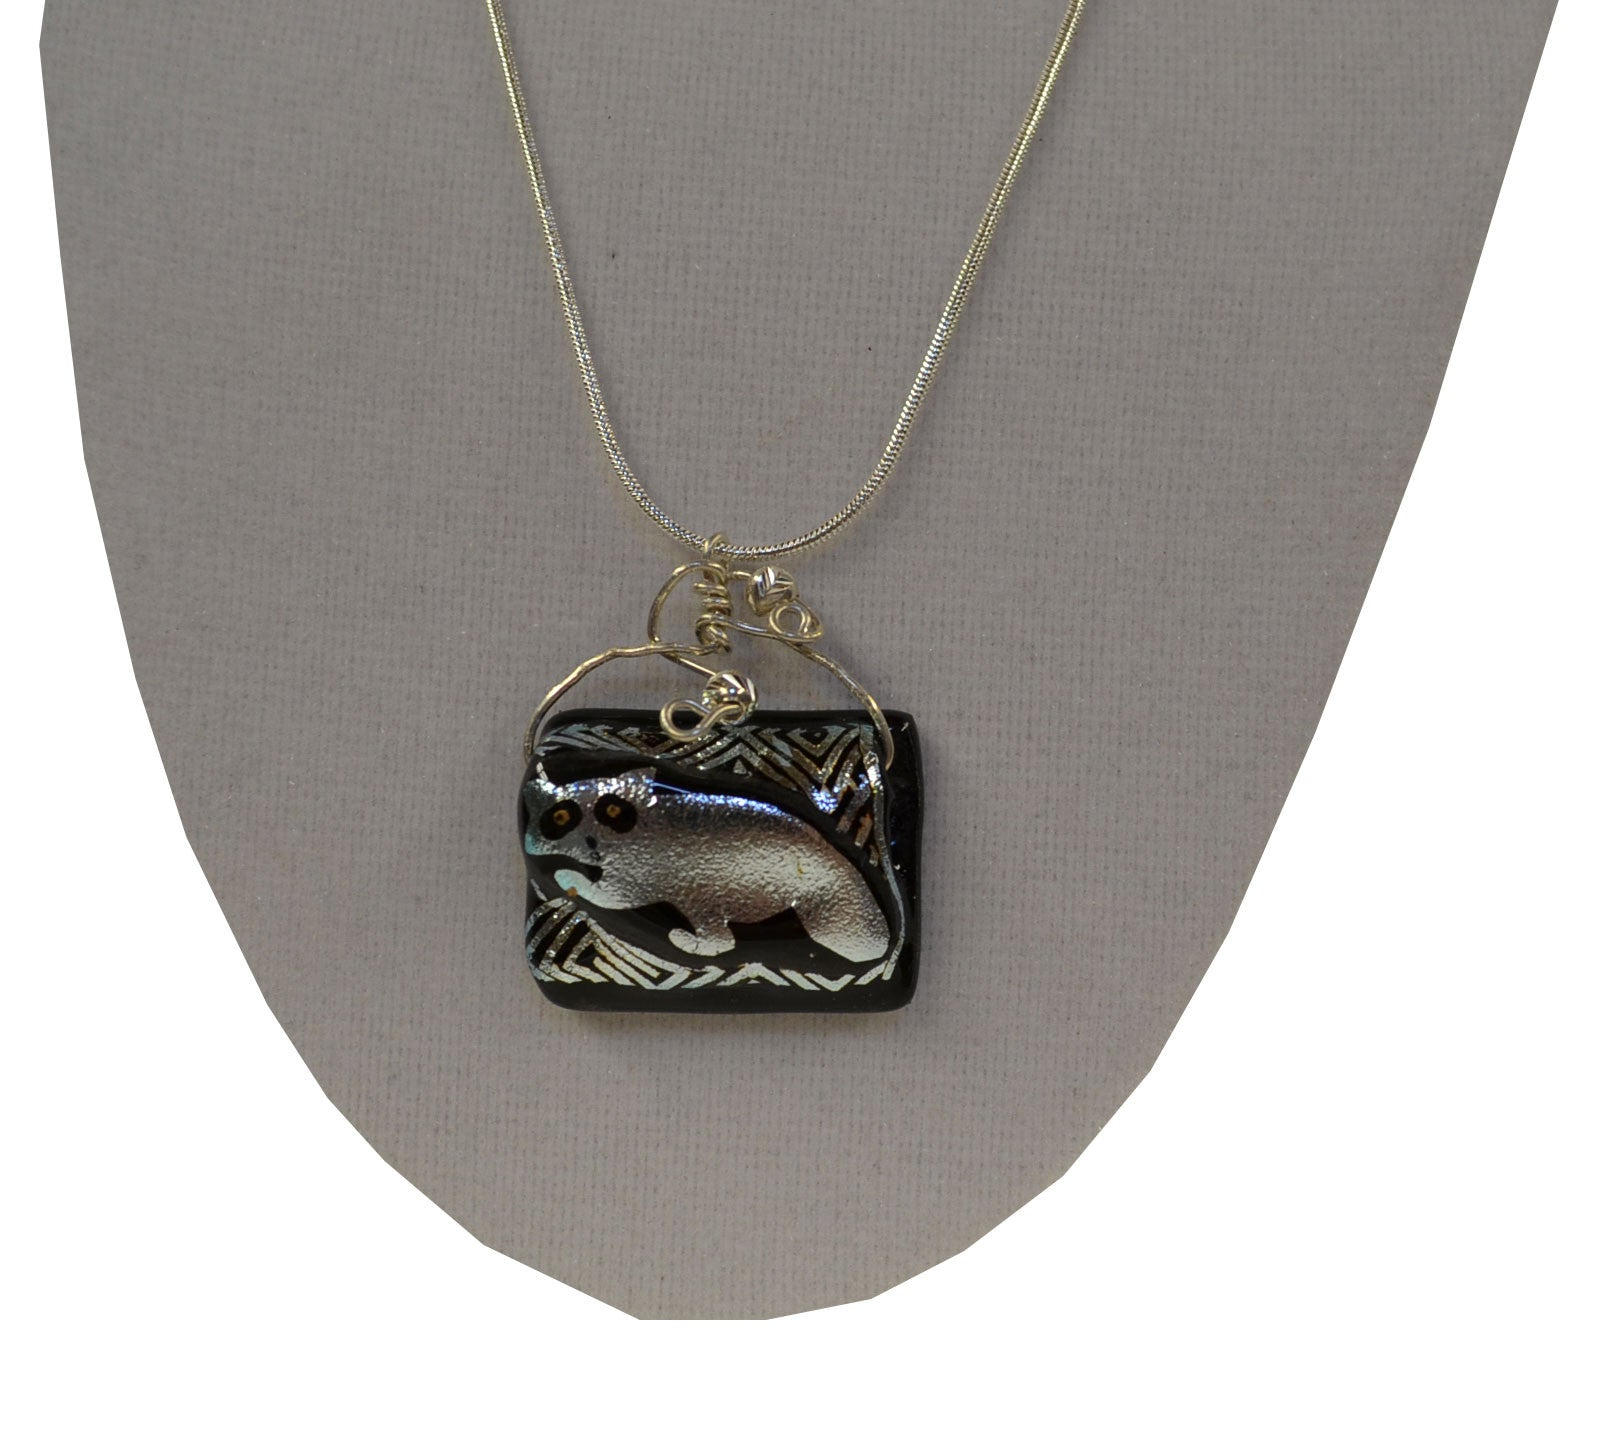 Zig Zag Glass Raccoon Necklace - Squirrels and More